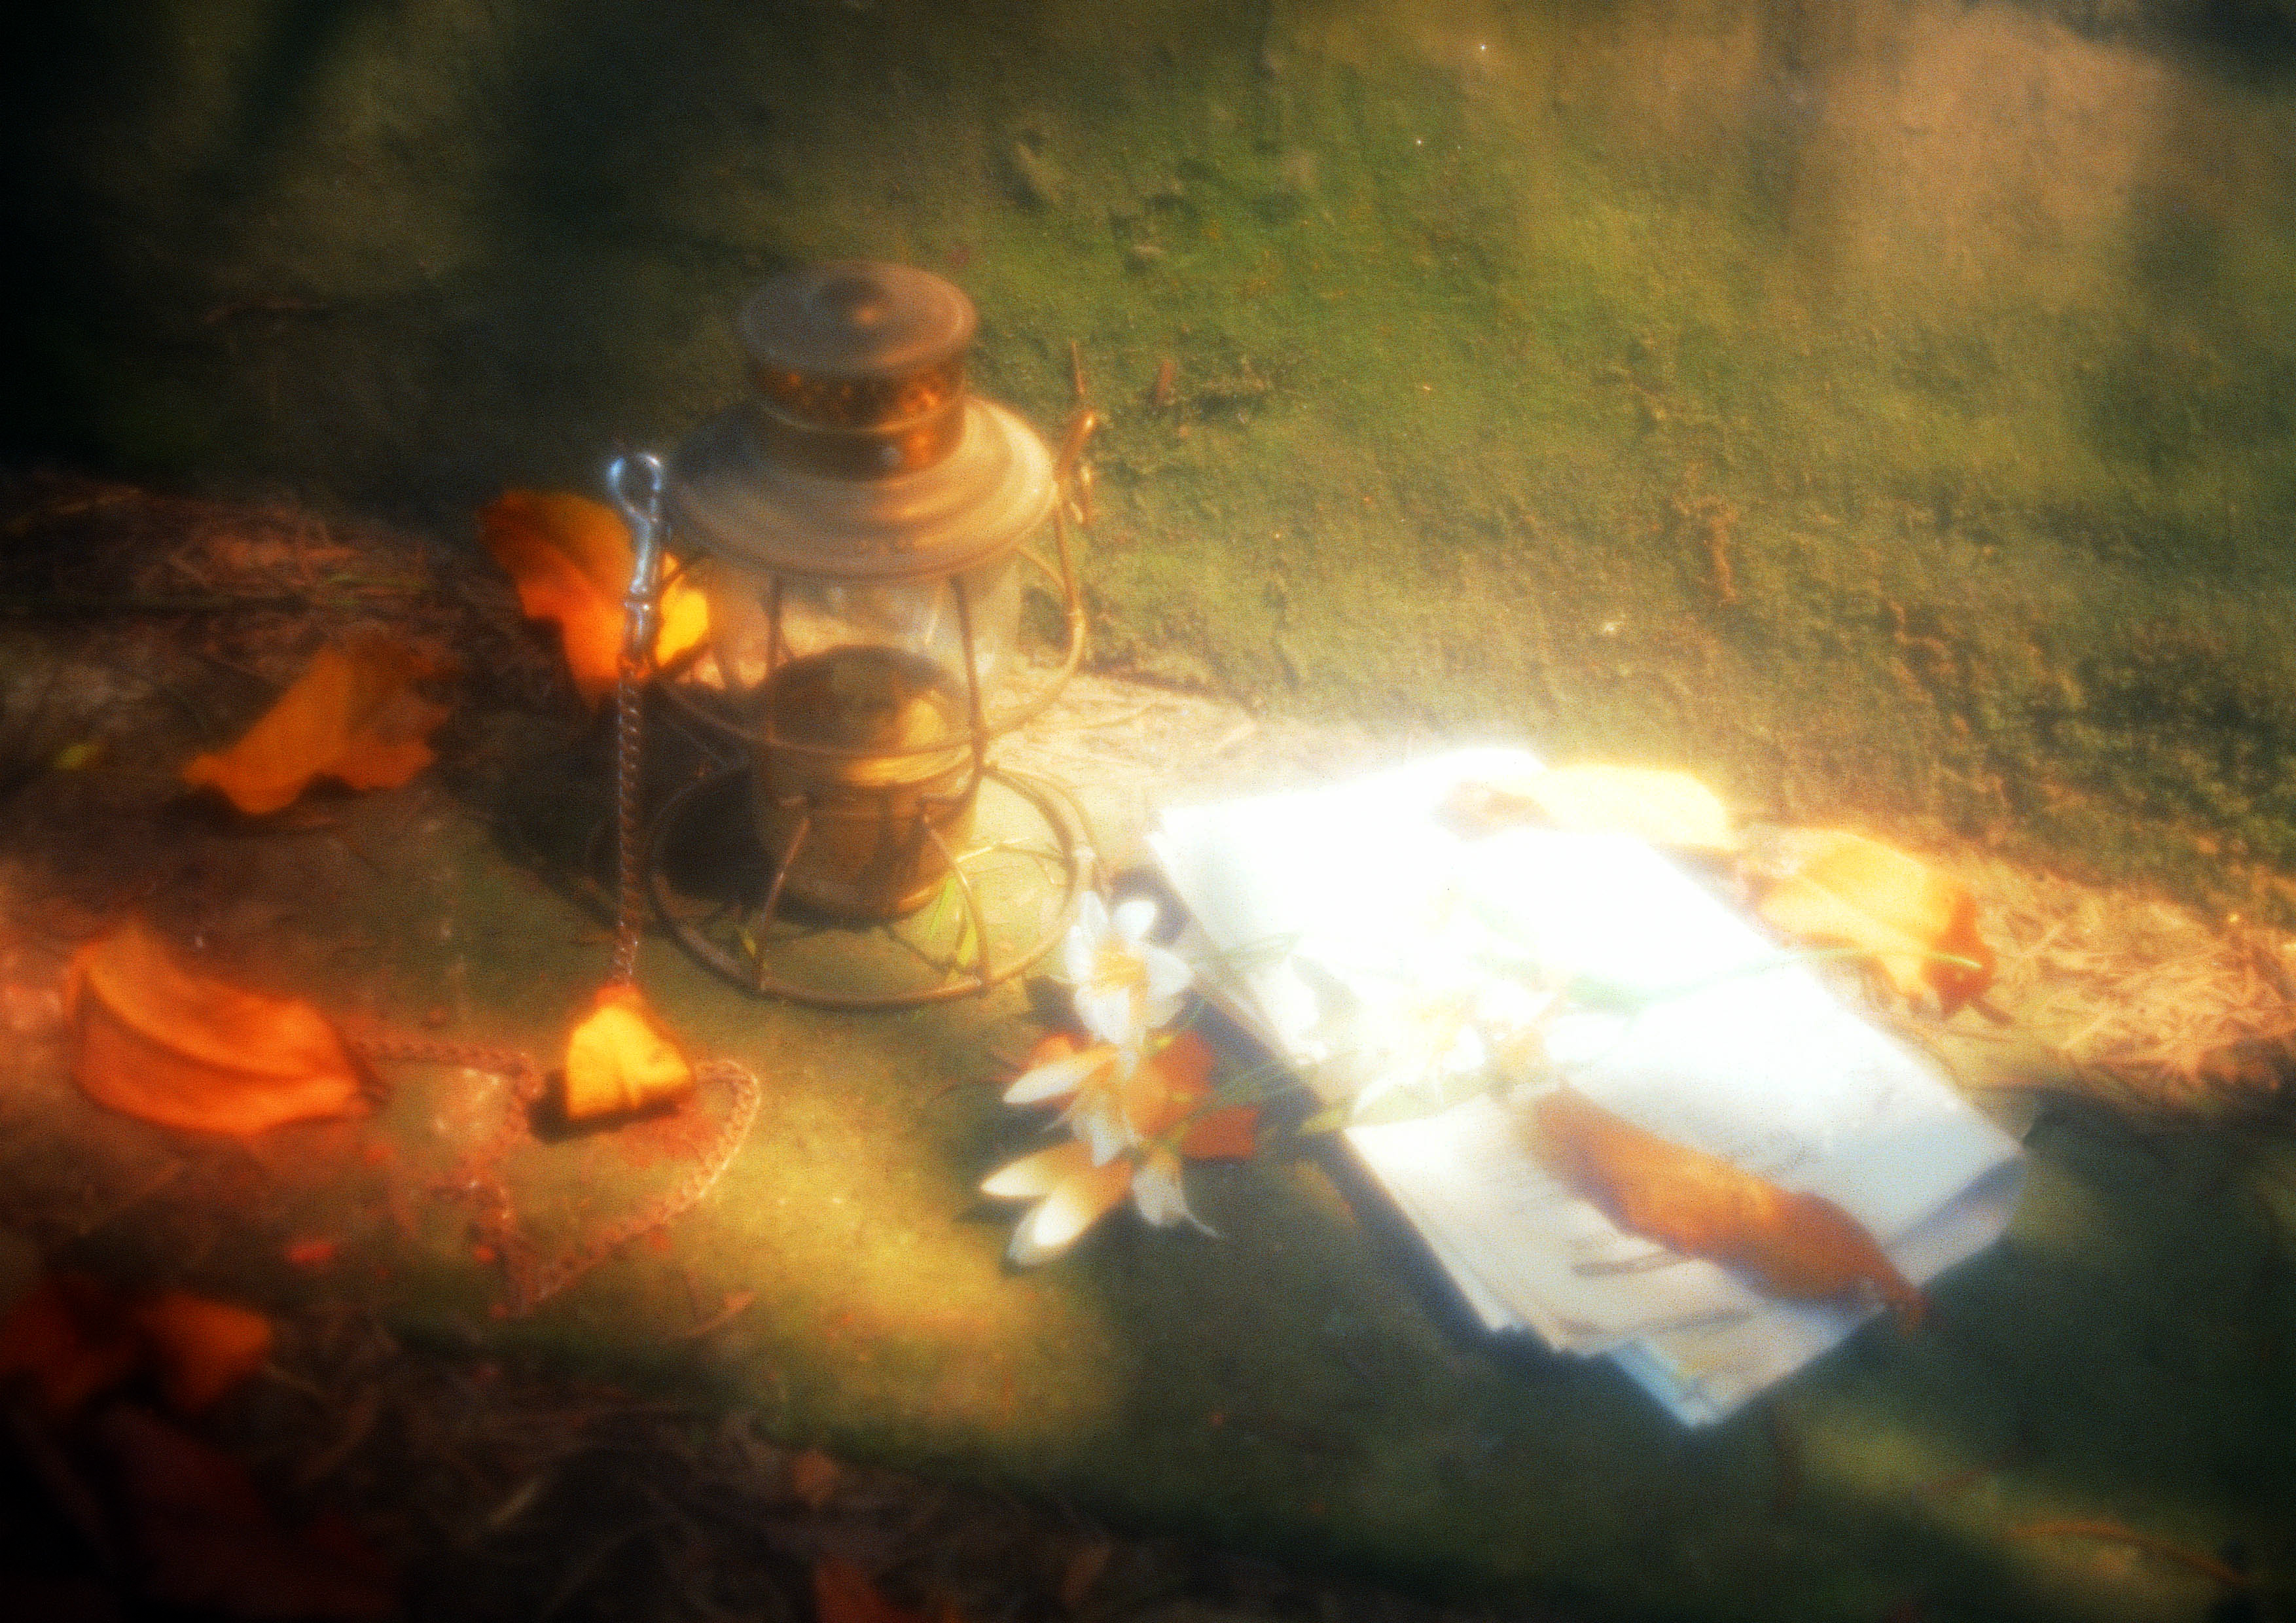 Lamp and leaves, Chain, Flowers, Grainy, Lamp, HQ Photo